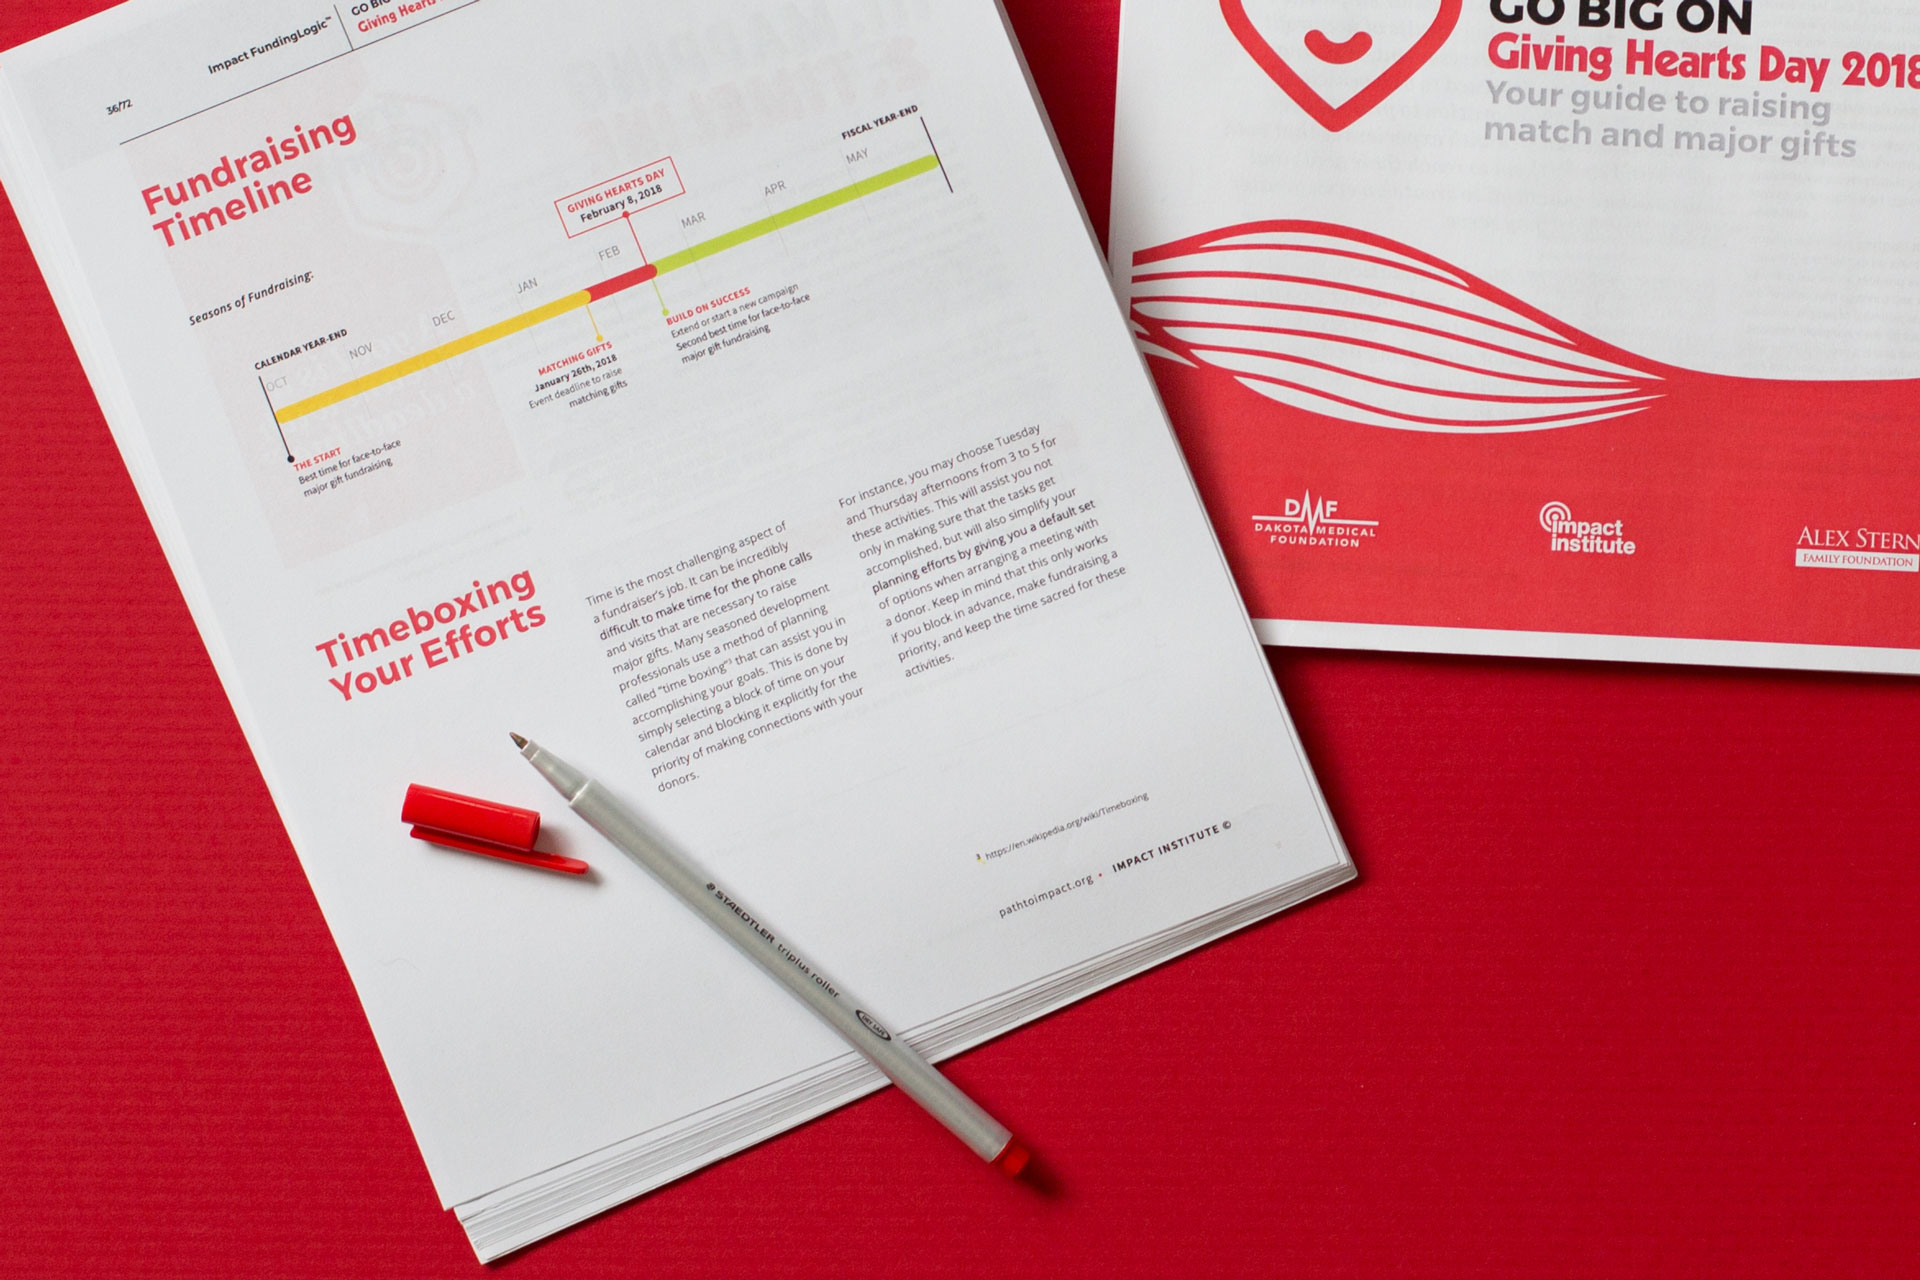 Close-up of two printed booklets and a red pen